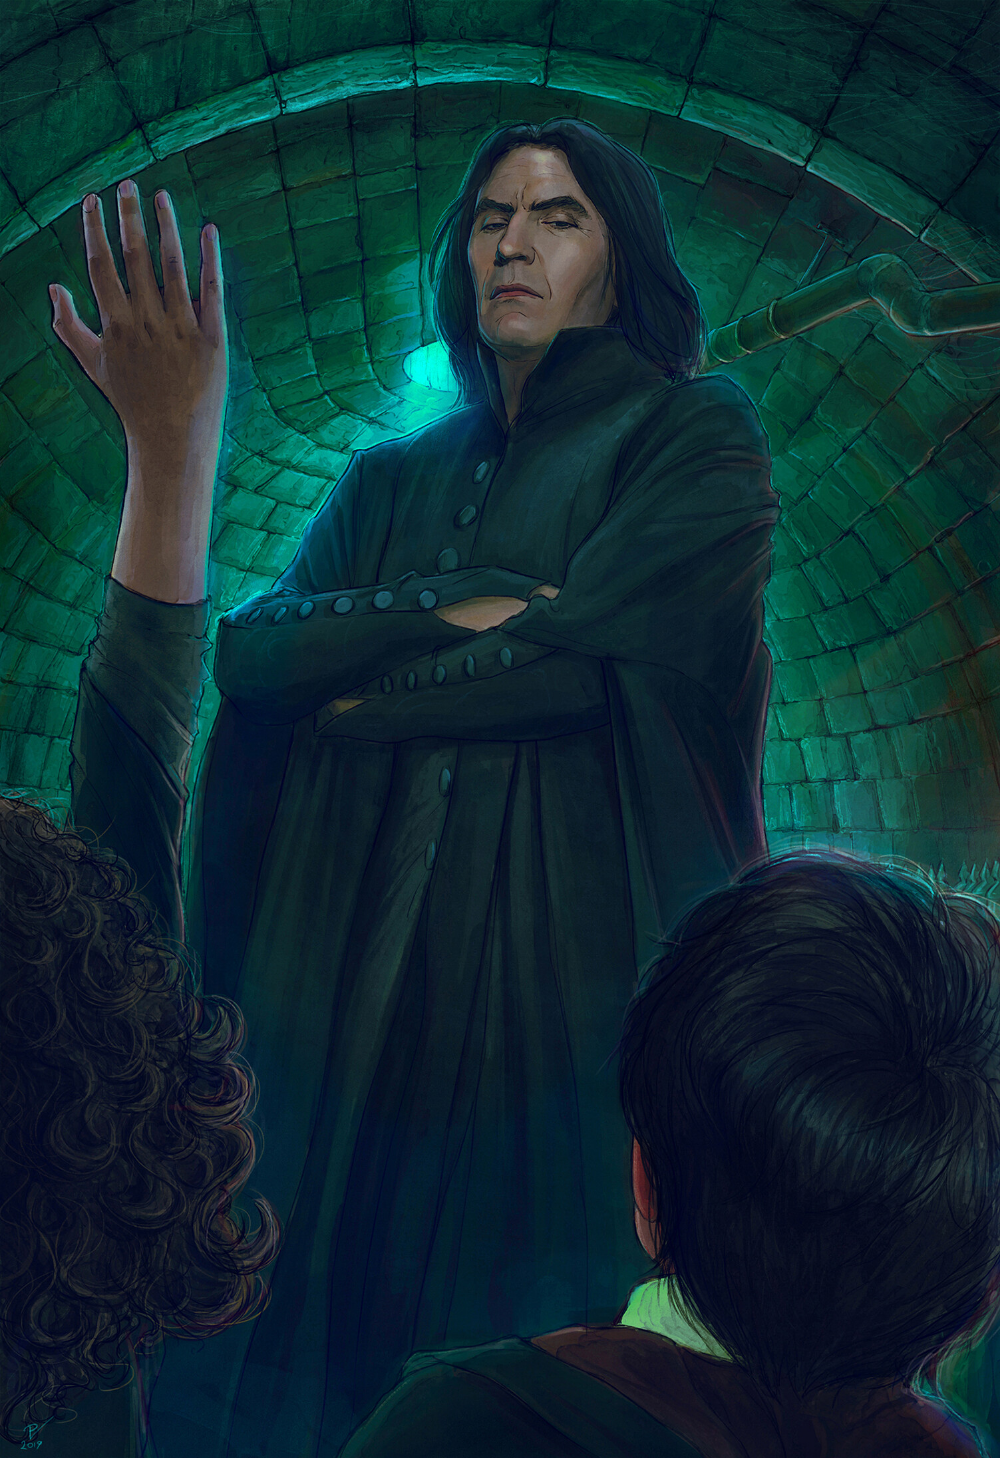 Severus Snape Image Harry Potter And The Goblet Of Fire Bluray Snape Harry Potter Harry Potter Years Severus Snape Images